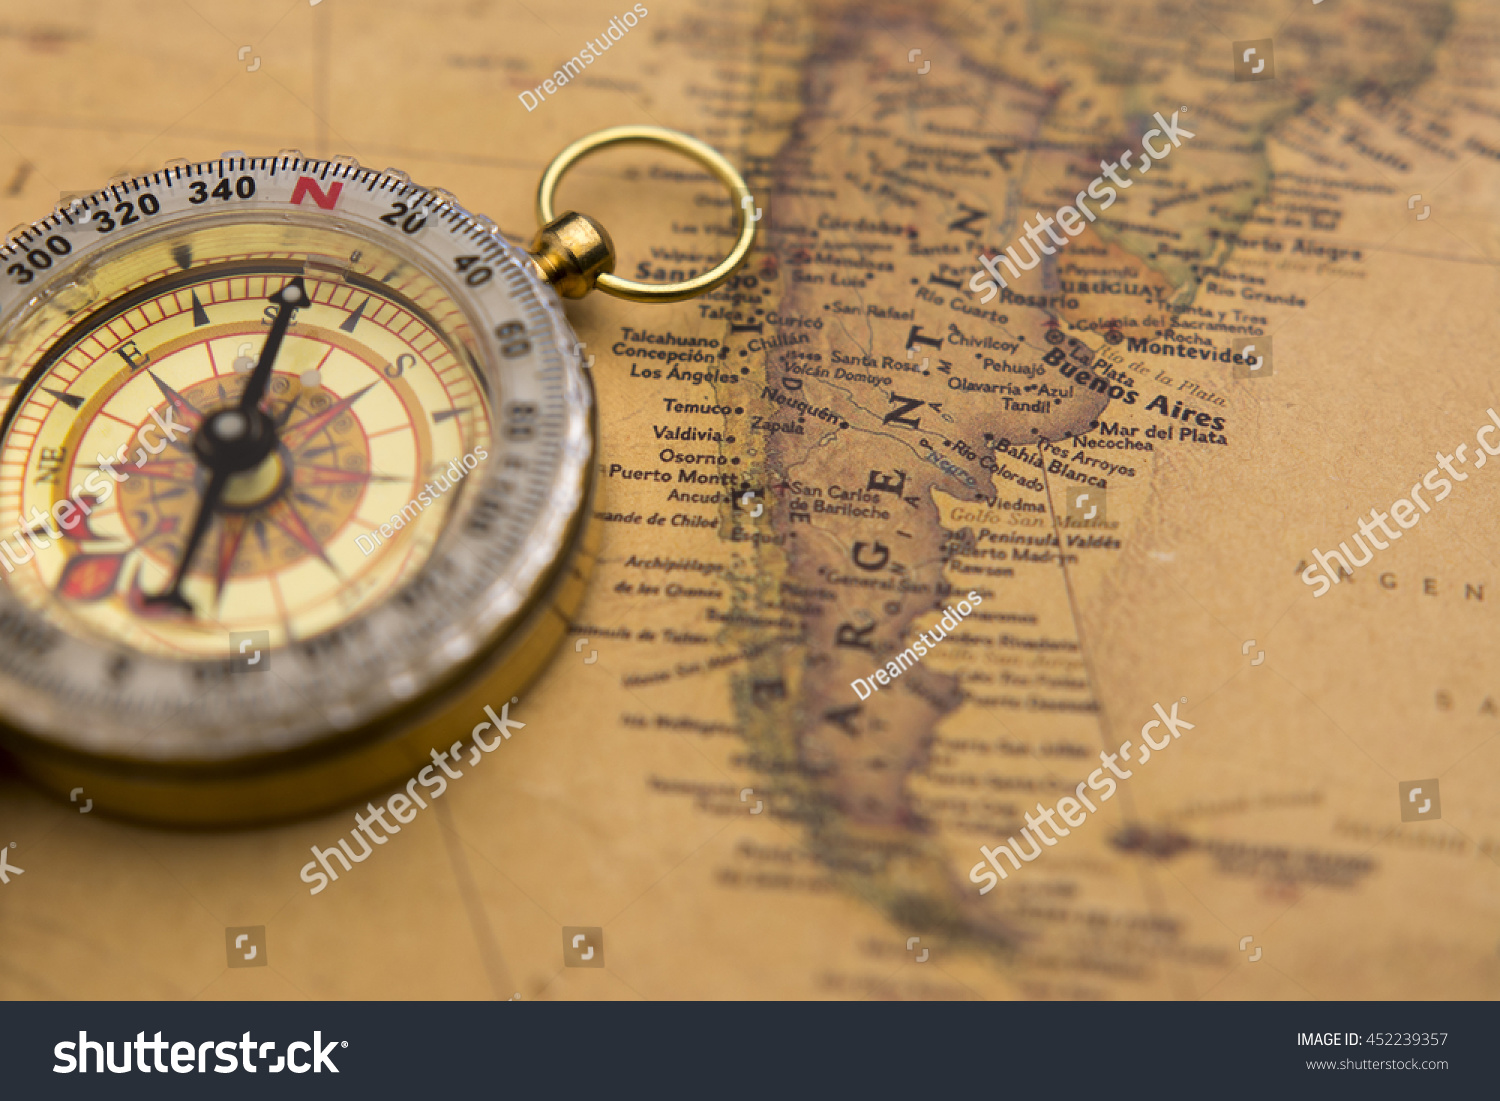 Old Compass On Vintage Map Selective Stock Photo - Argentina map vintage